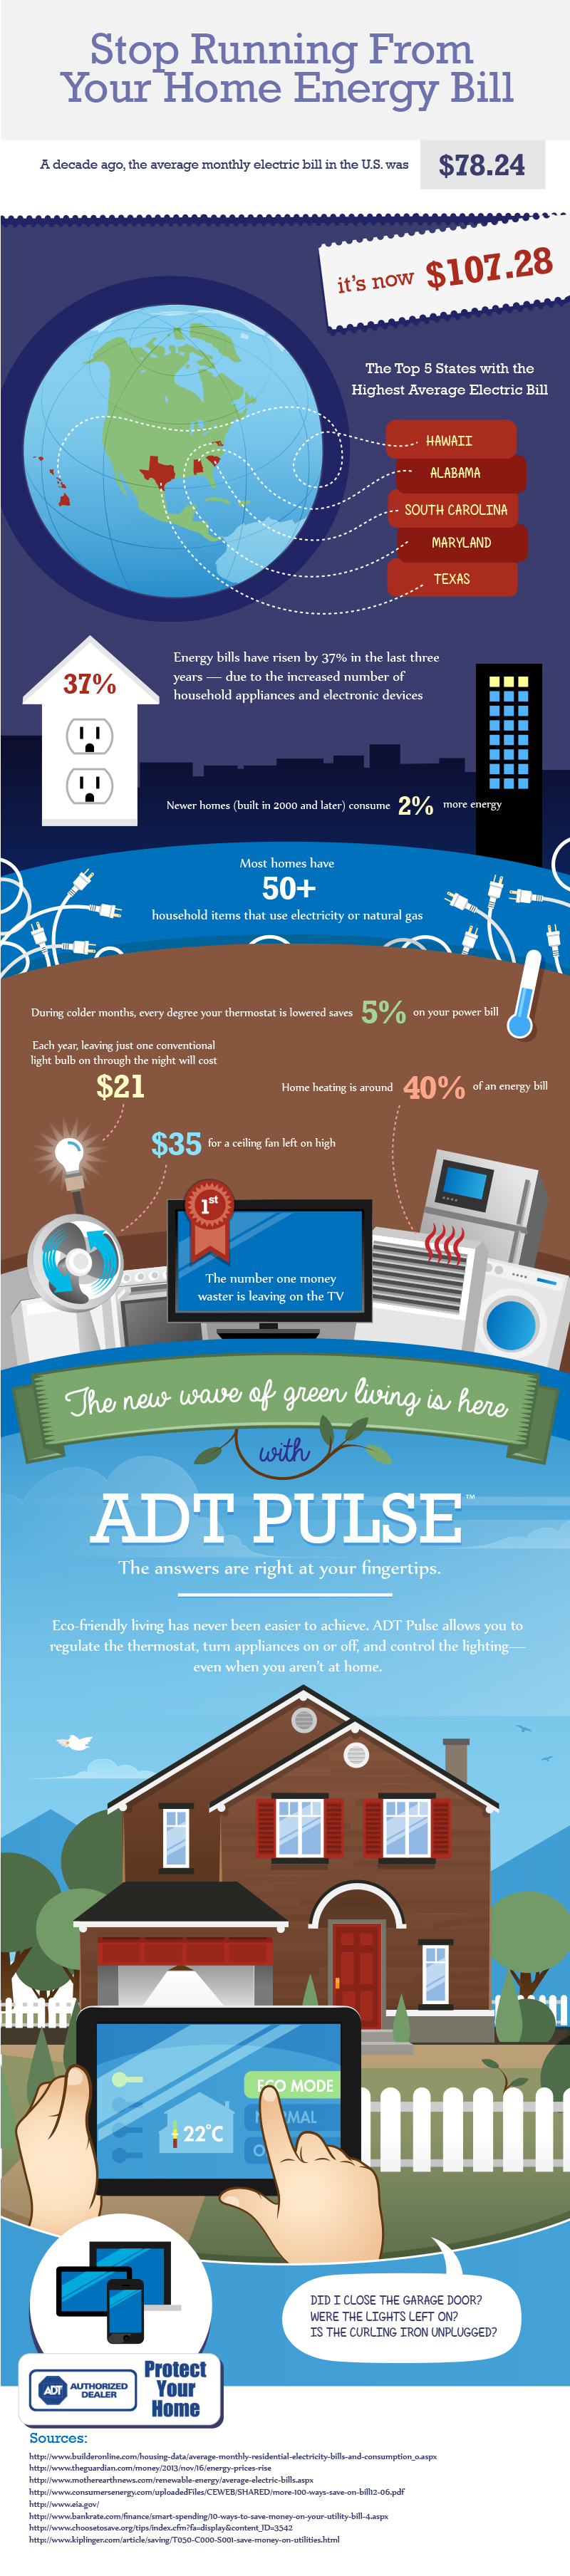 ADT-Pulse-Infographic--FINAL2